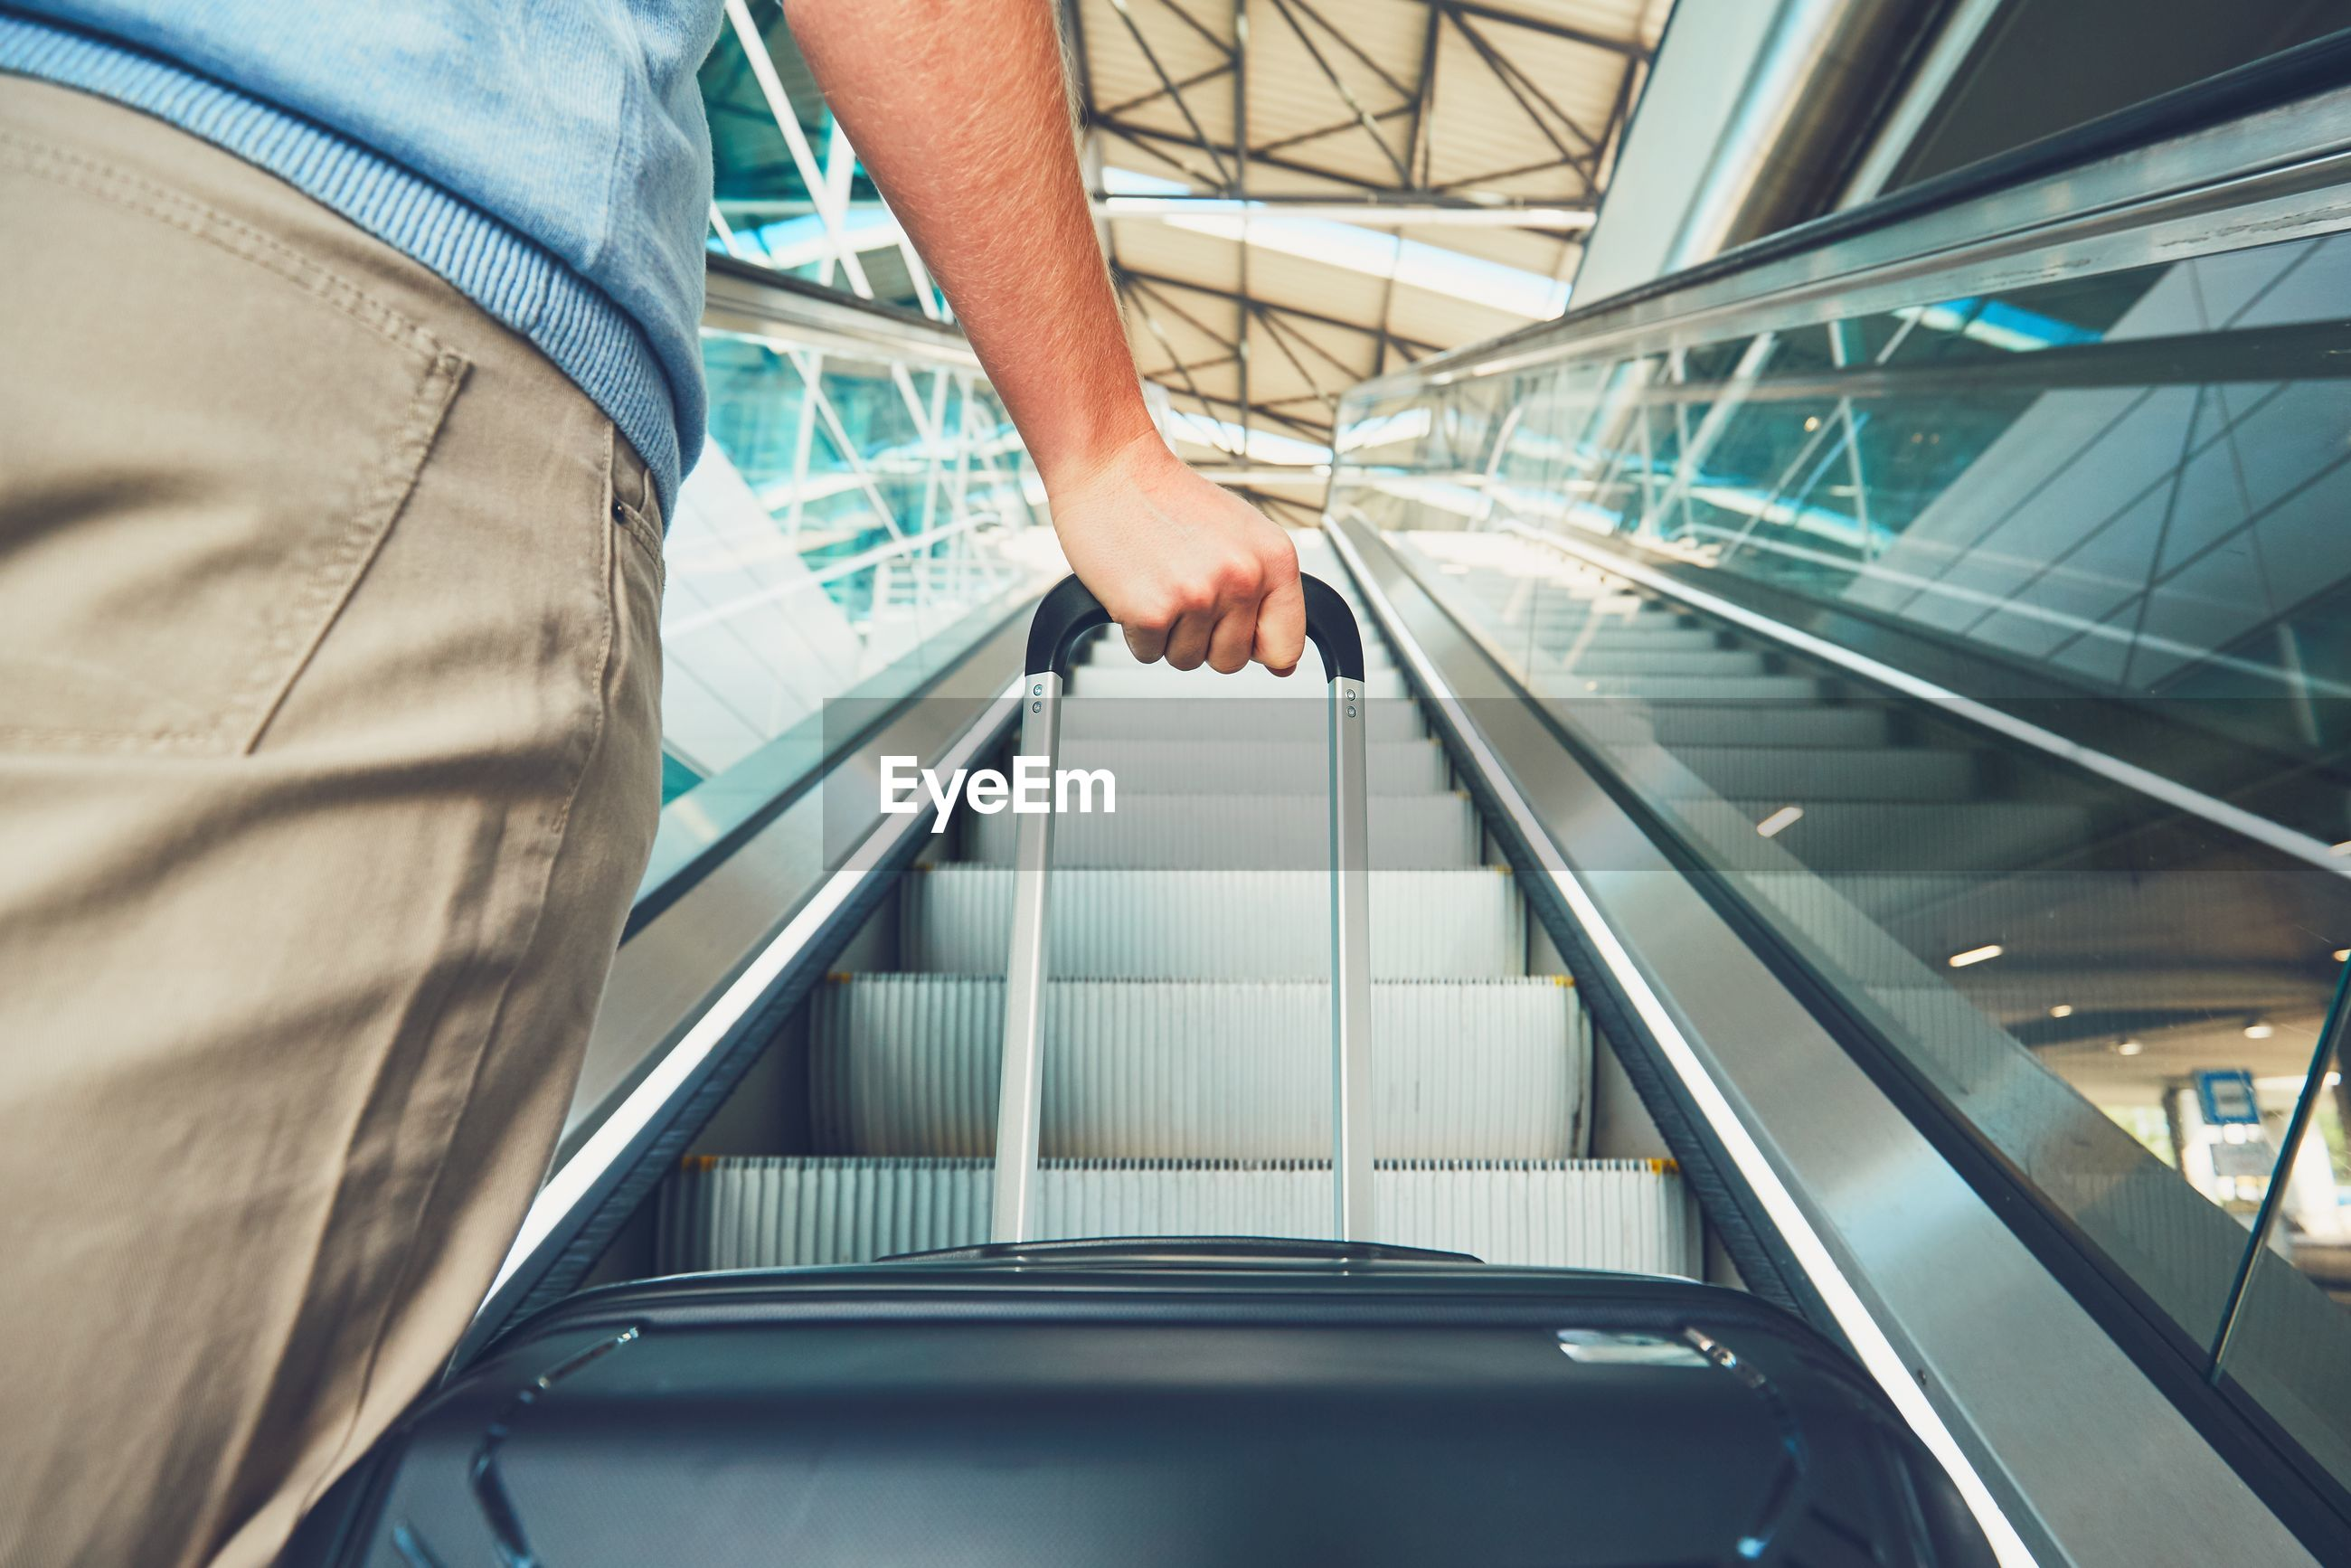 Cropped image of man holding luggage on escalator at airport